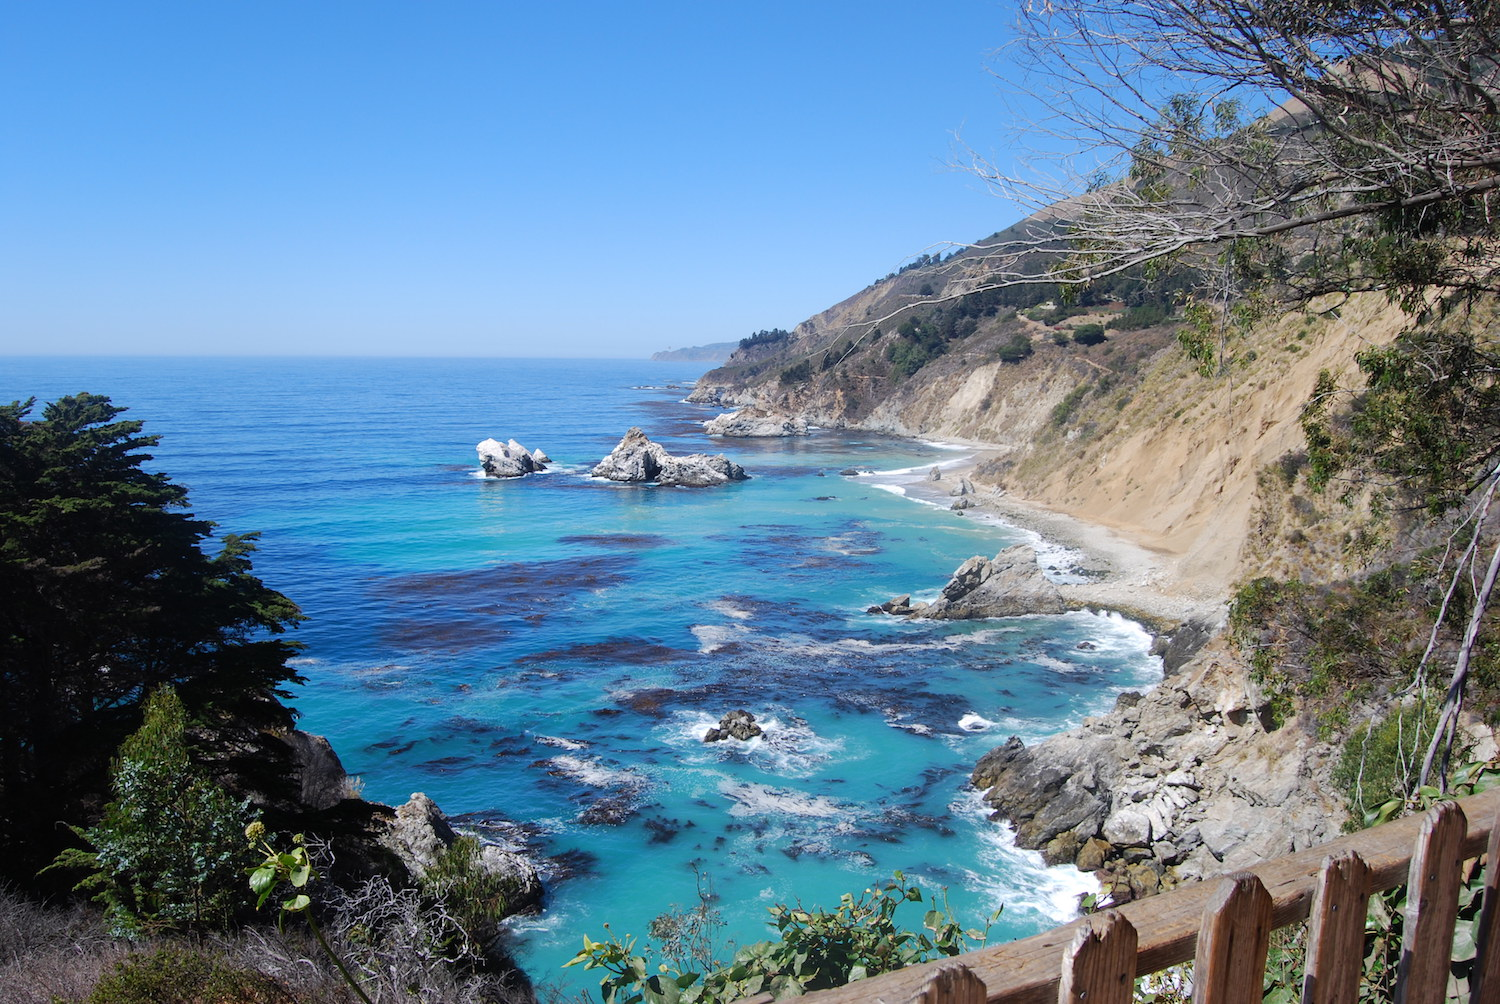 Julia Pfeiffer Burns State Park, hike, Big Sur California.jpg